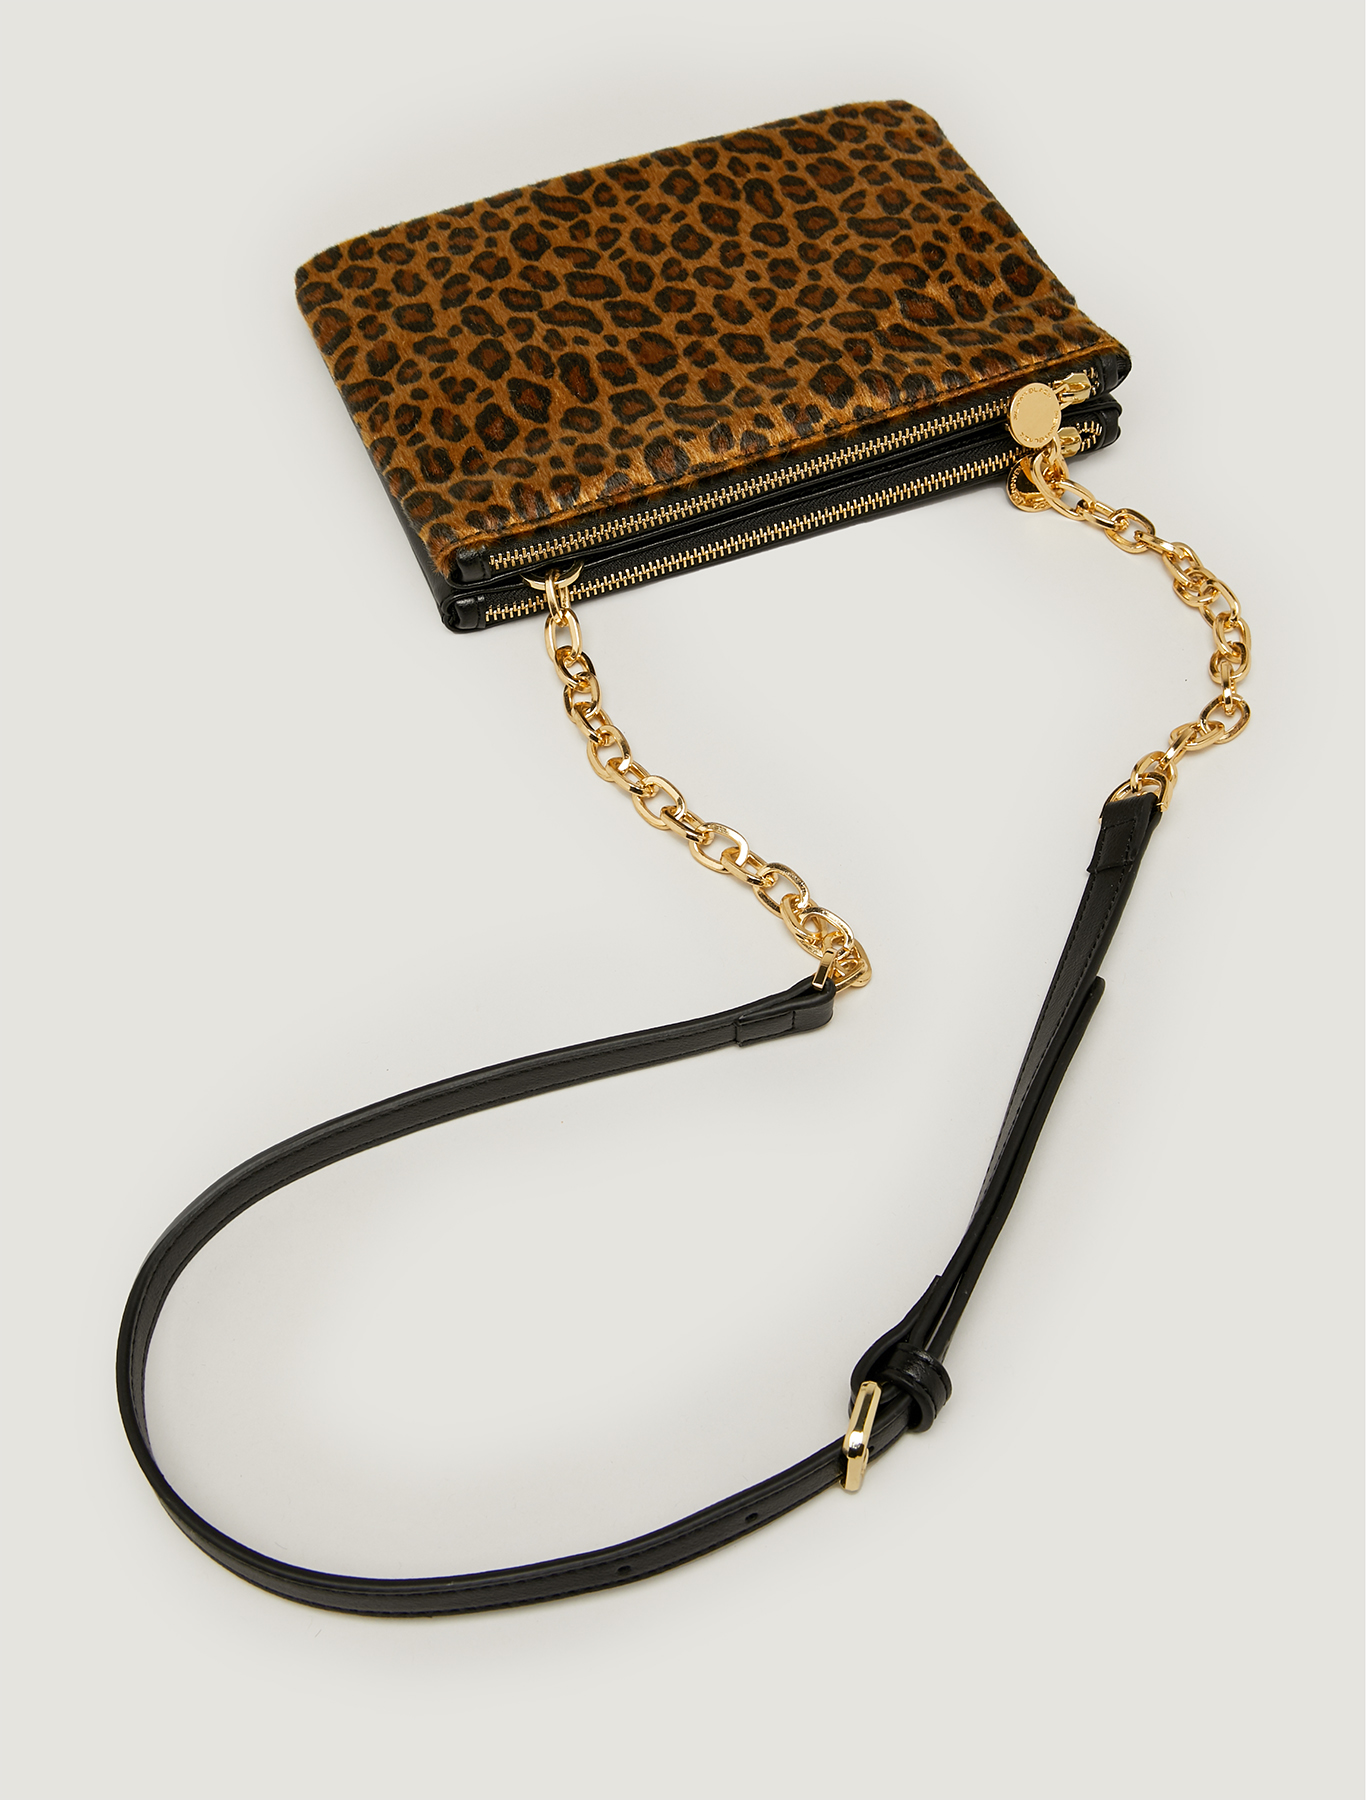 Double clutch bag with shoulder strap - brown - pennyblack